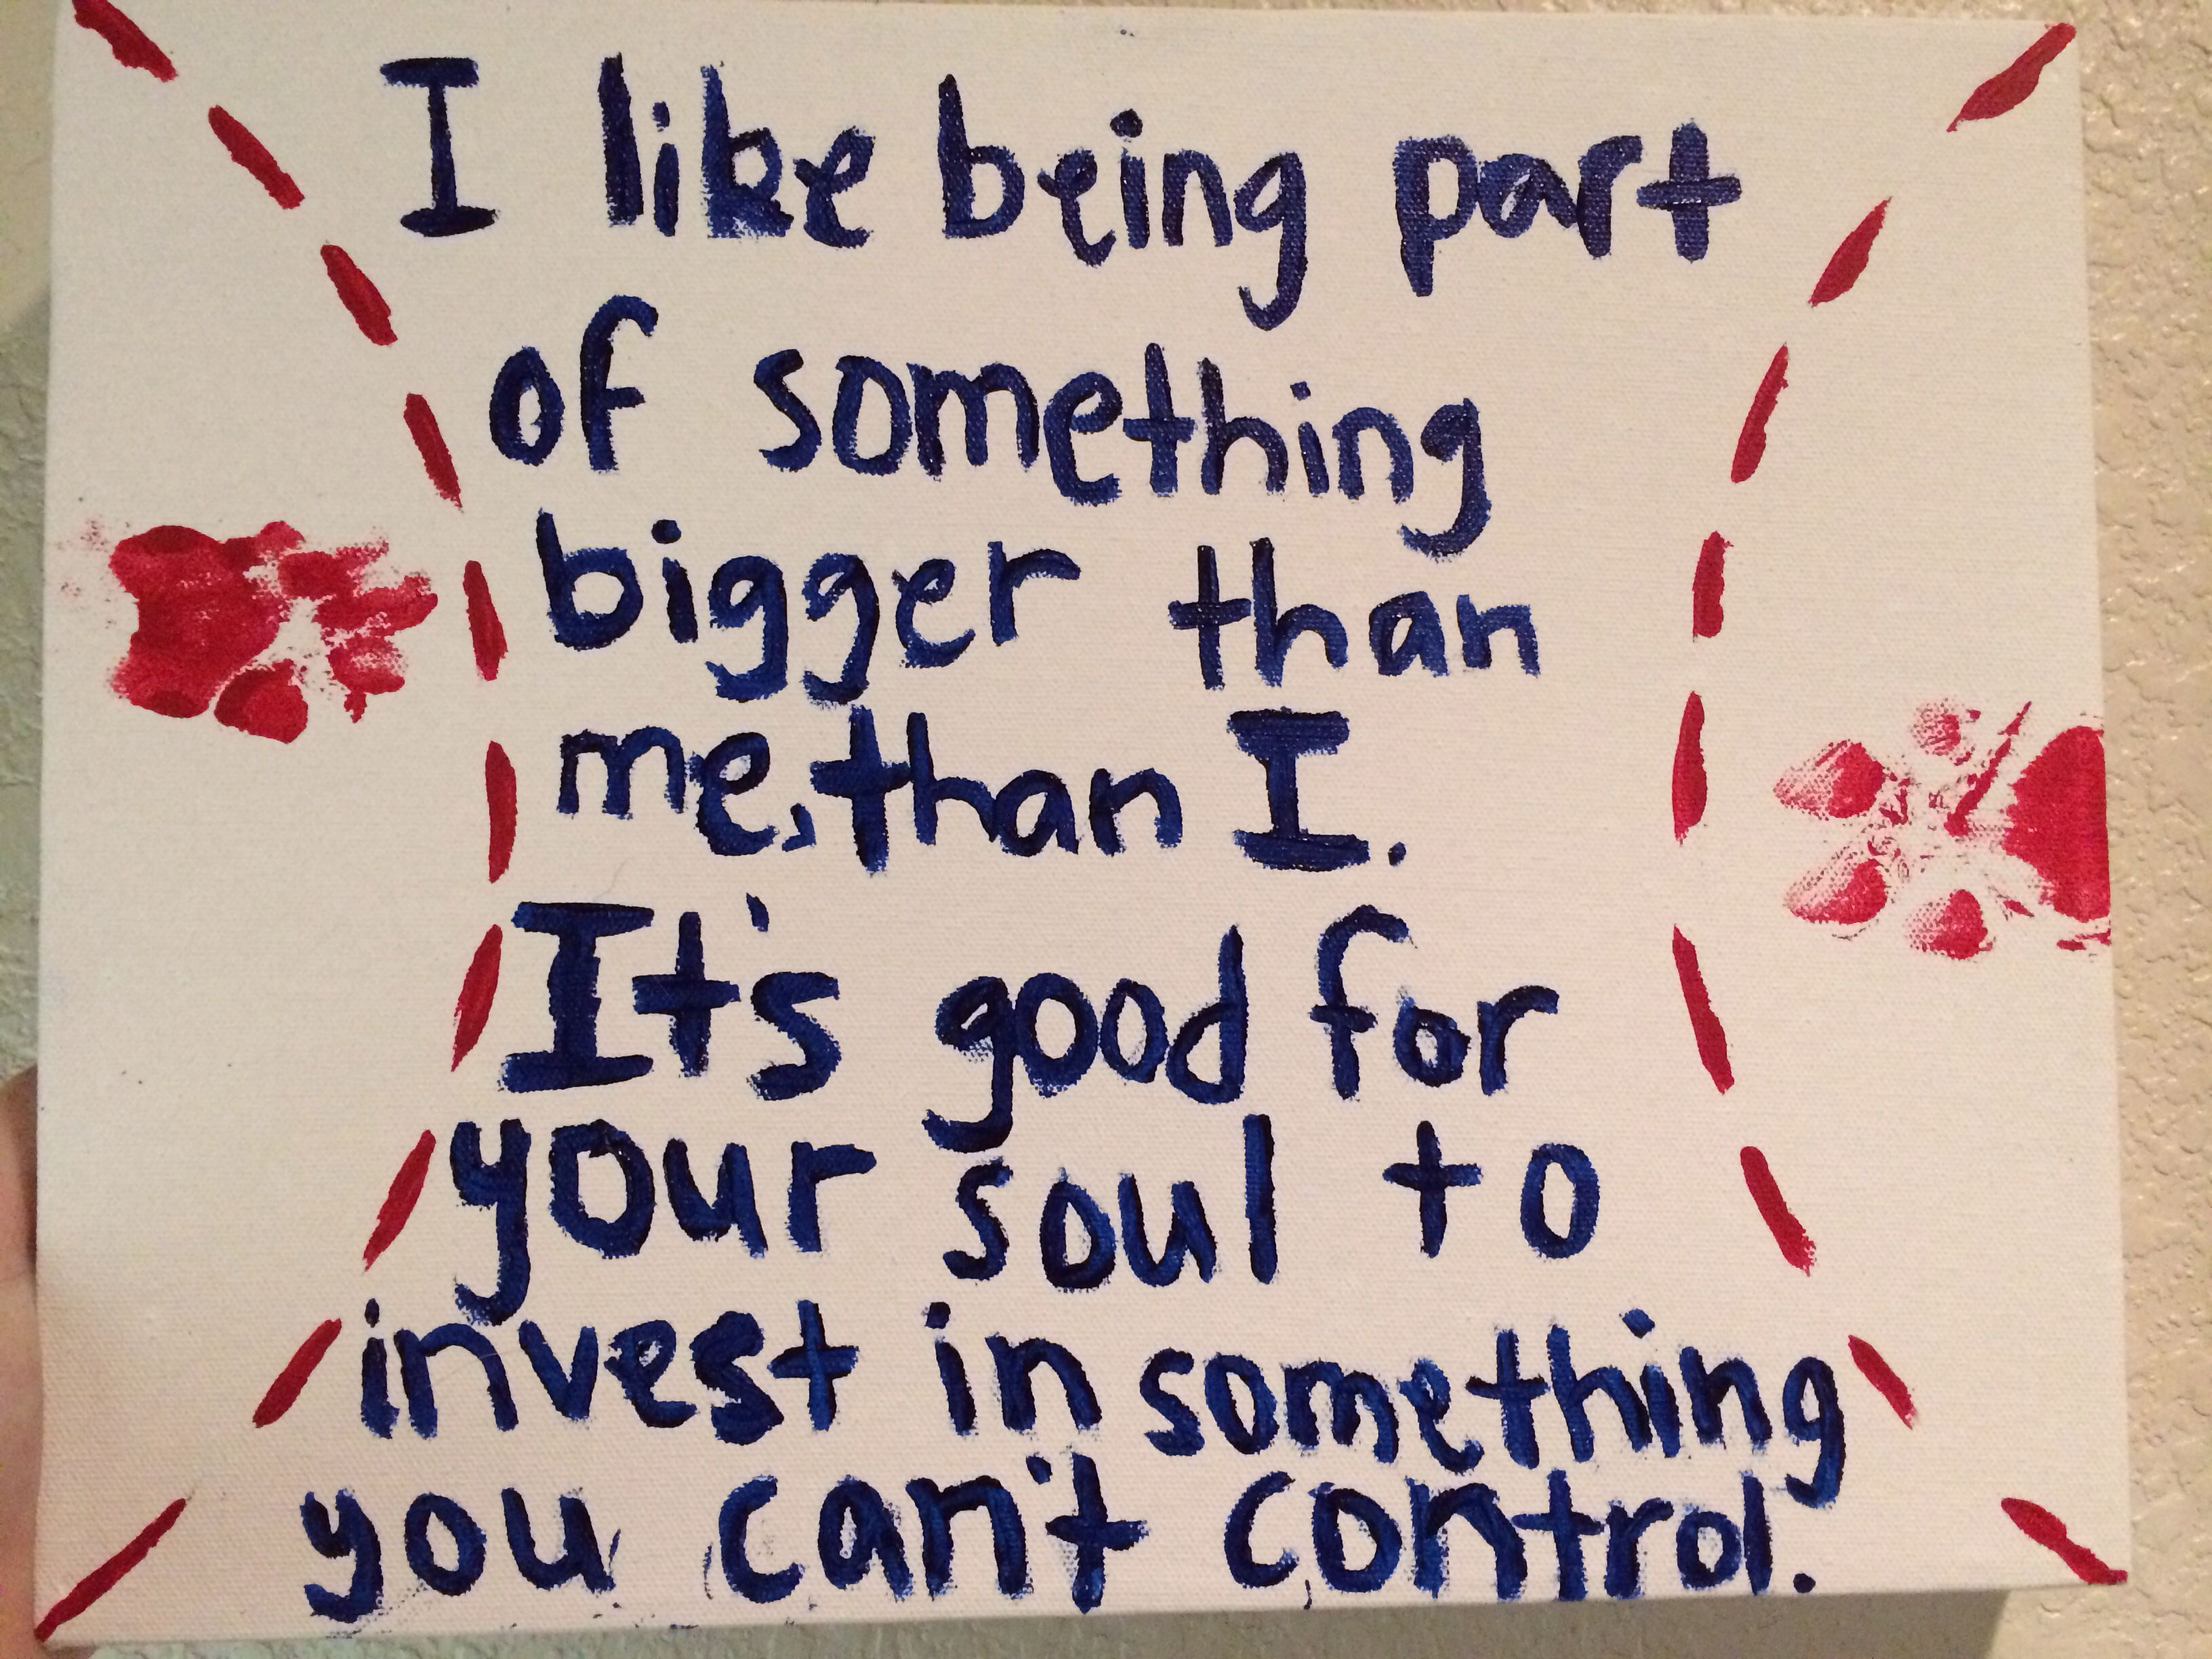 I like being part of something that's bigger than me than I. It's good for your soul to invest in something you can't control.